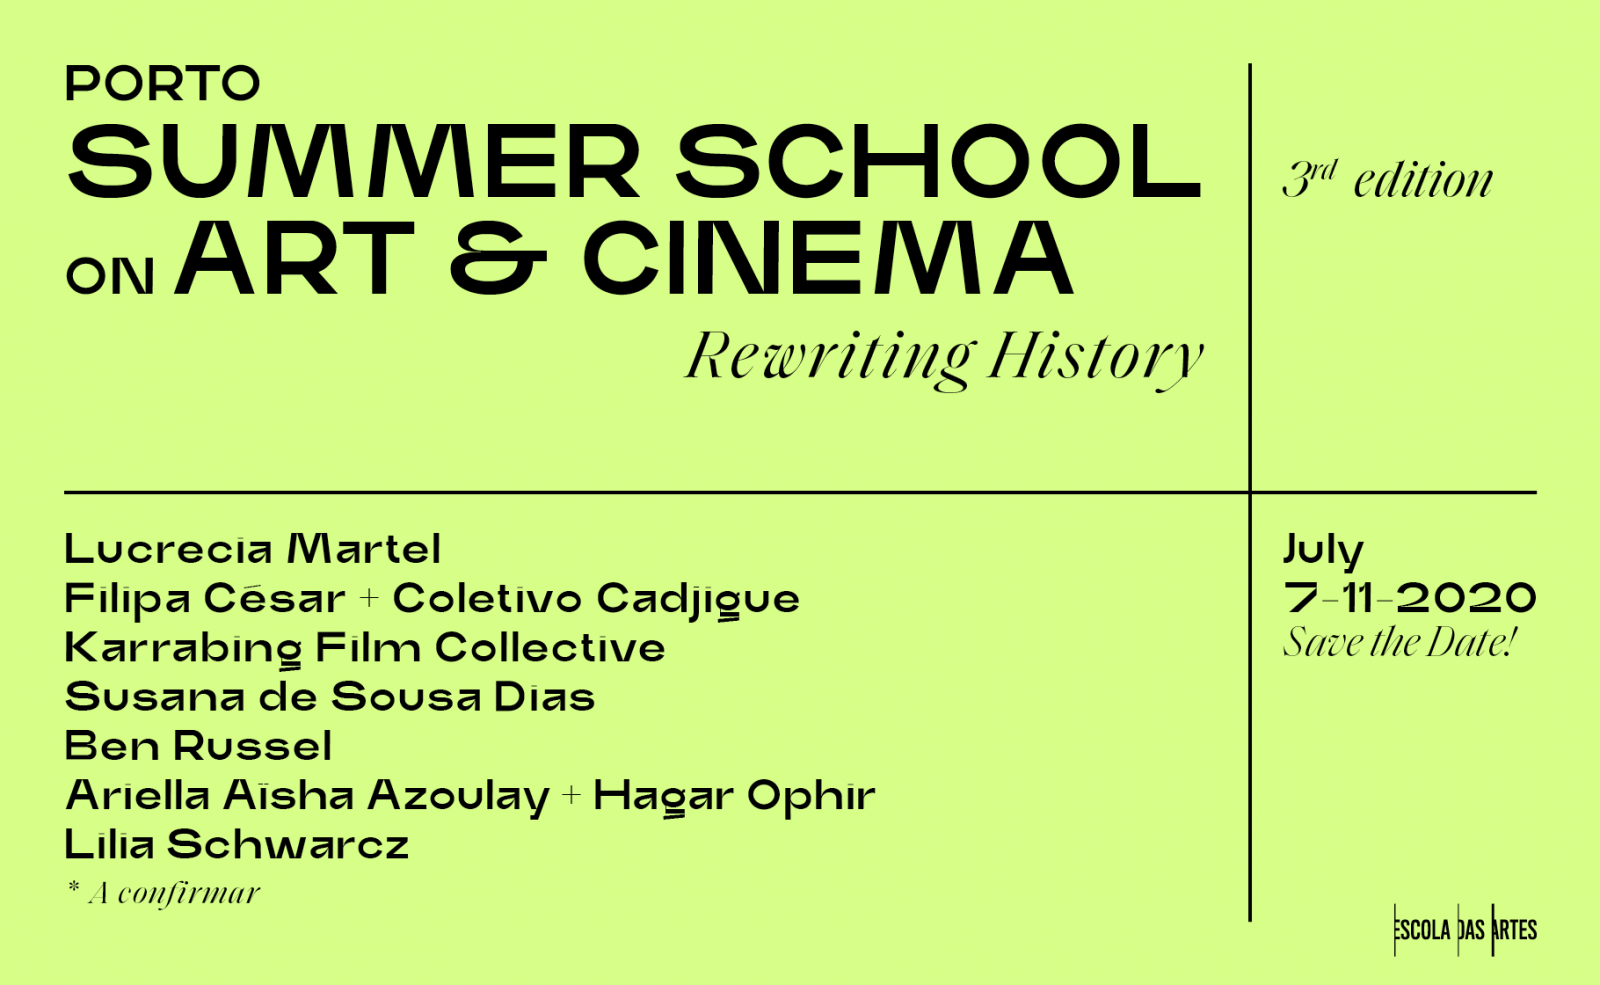 Porto Summer School on Art & Cinema 2020 · 3rd Edition · School of Arts